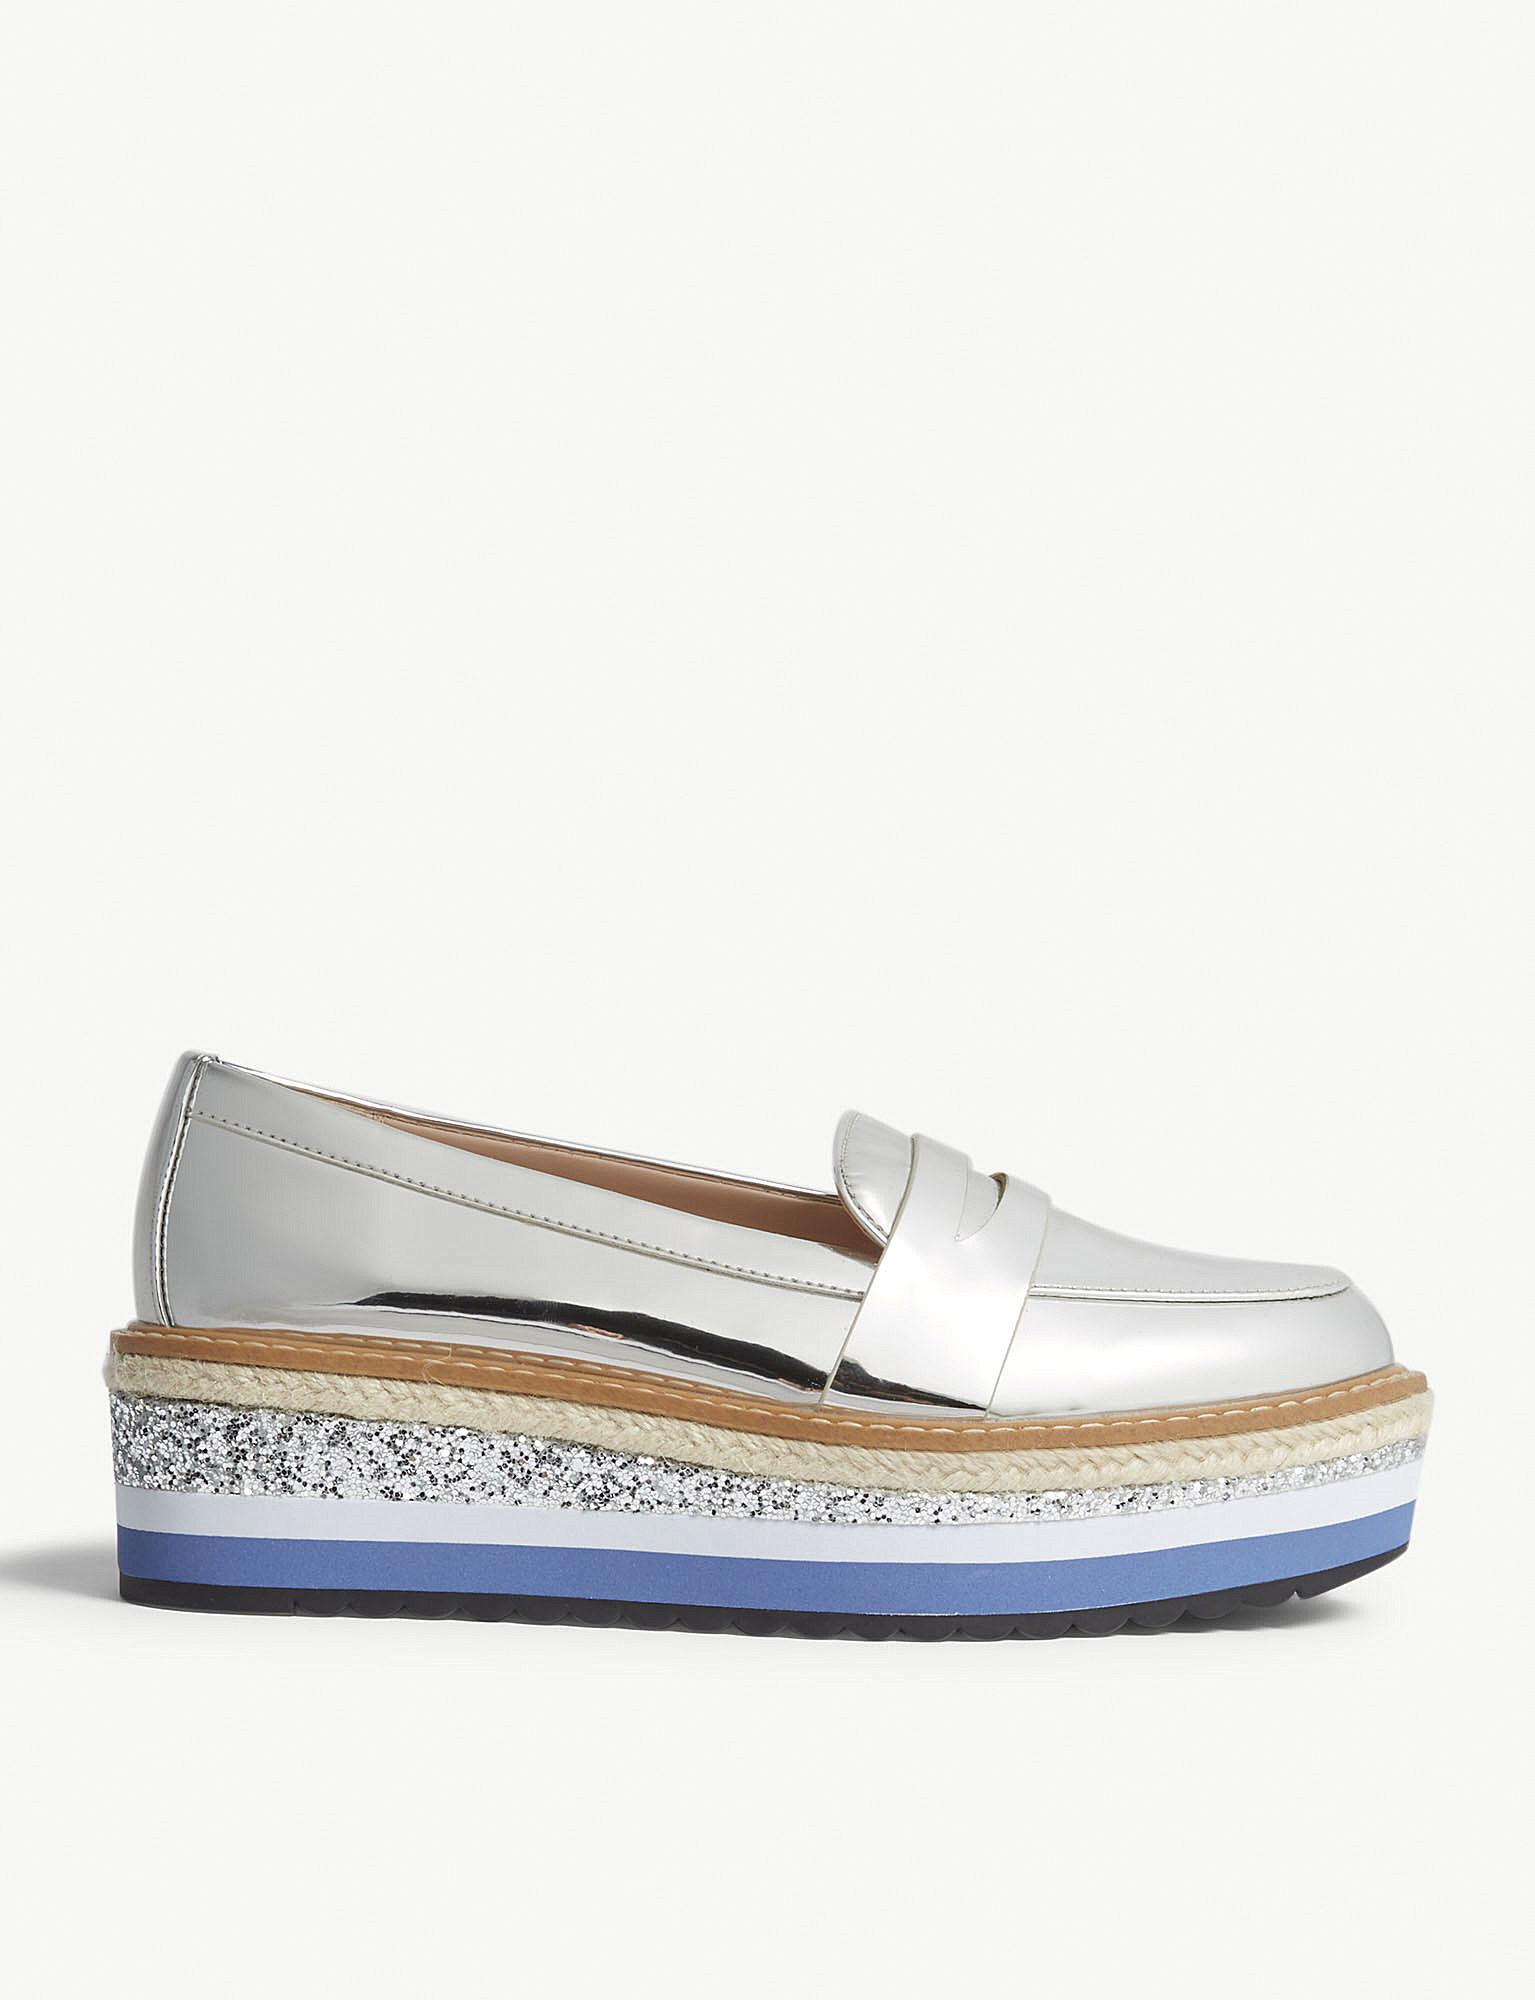 9885e5bb0bc Lyst - ALDO Ibaresen Flatform Loafers in Metallic